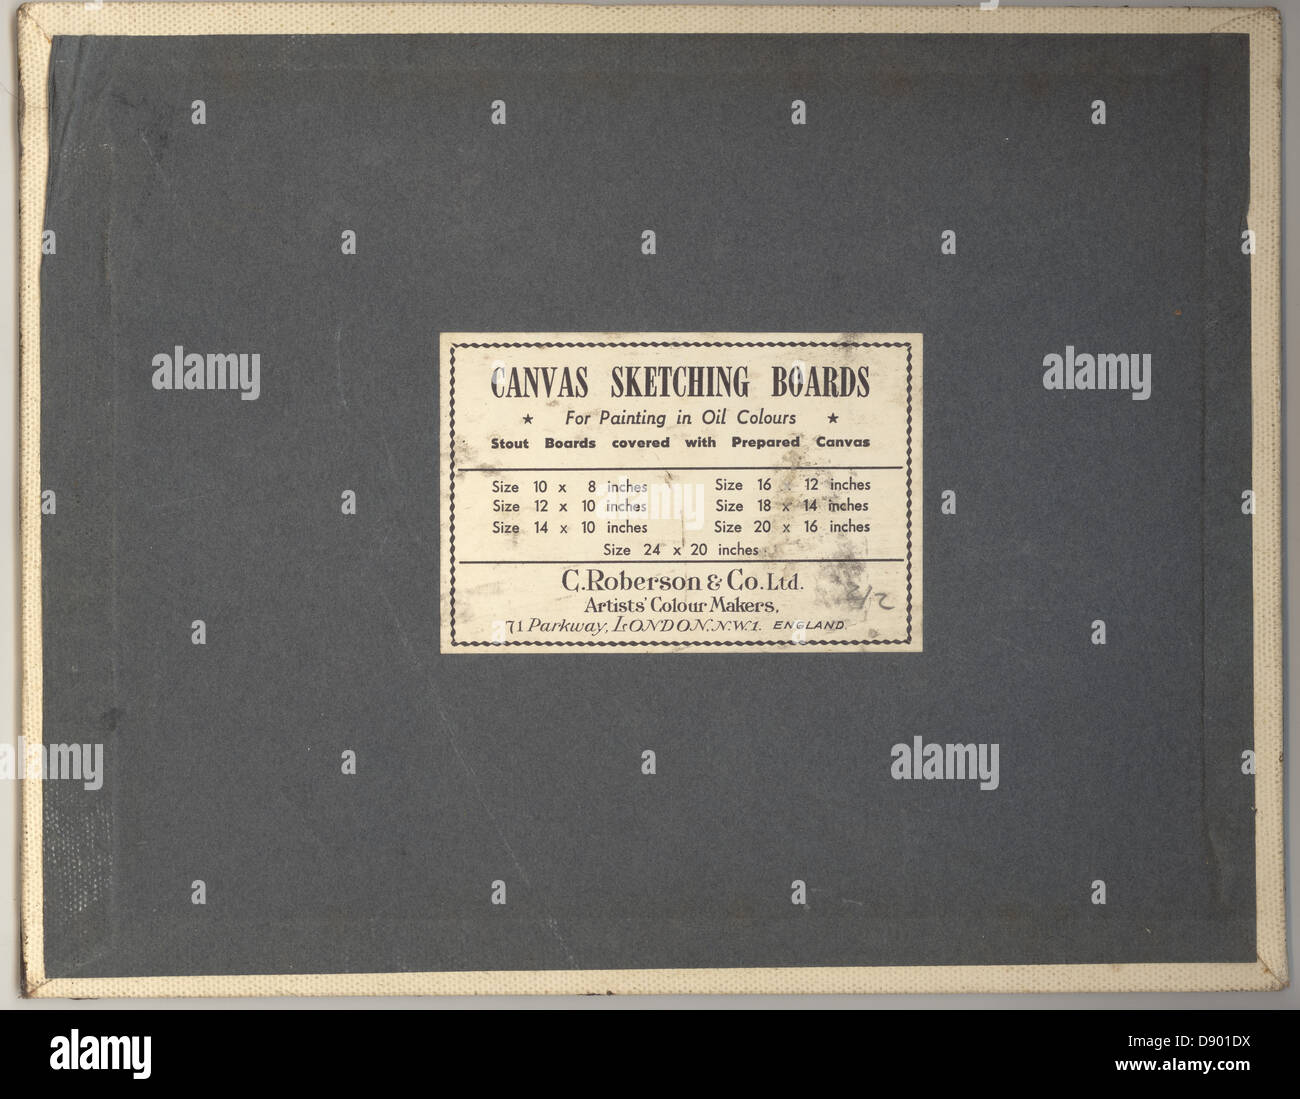 Reverse of early 1900's British-made canvas sketching board, U.K. - Stock Image